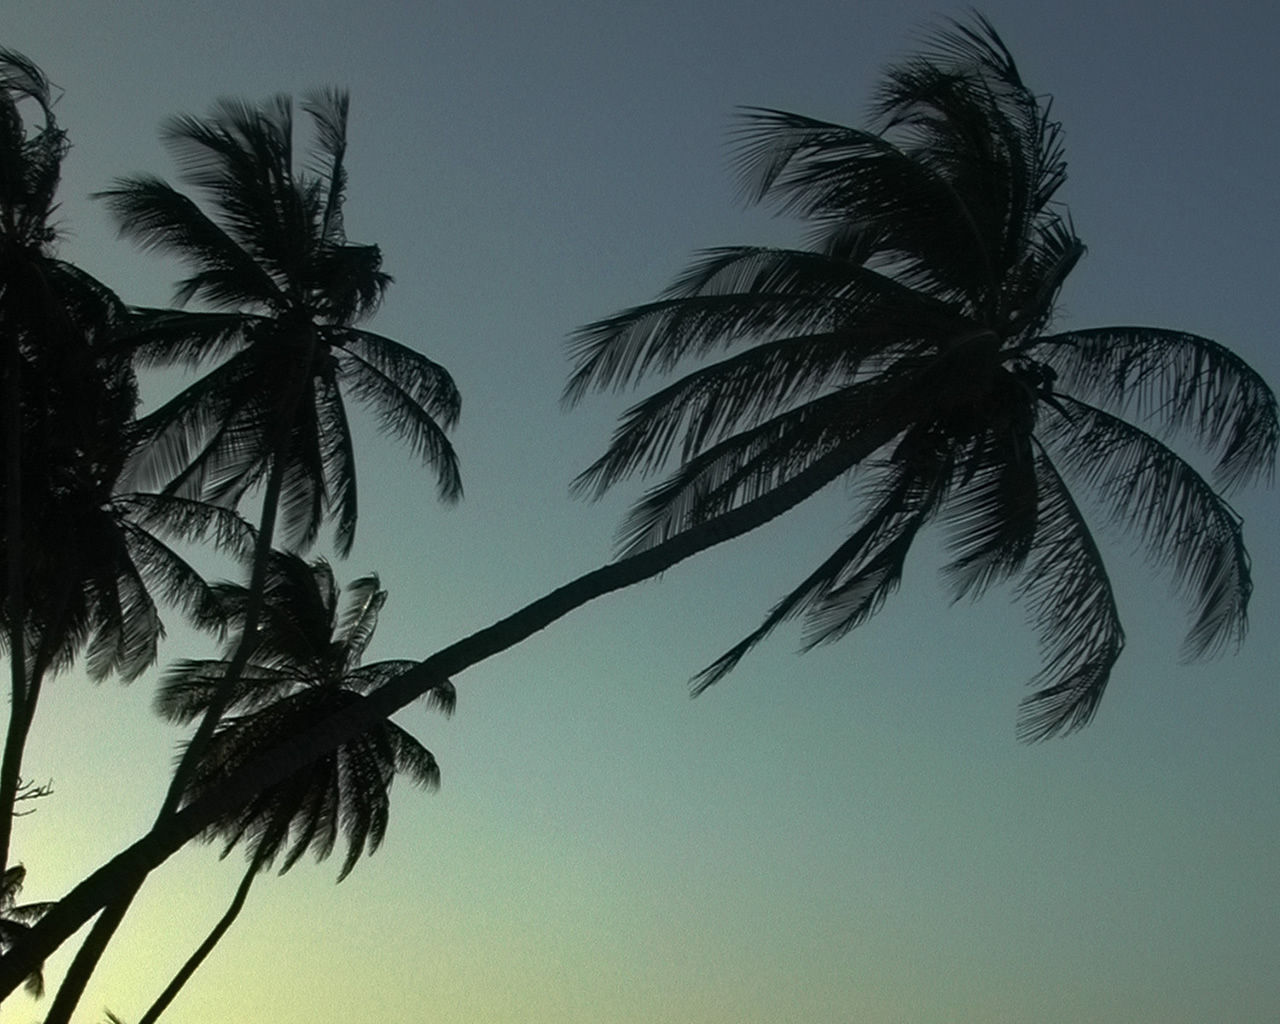 Palm trees leaning into the sky Wallpaper